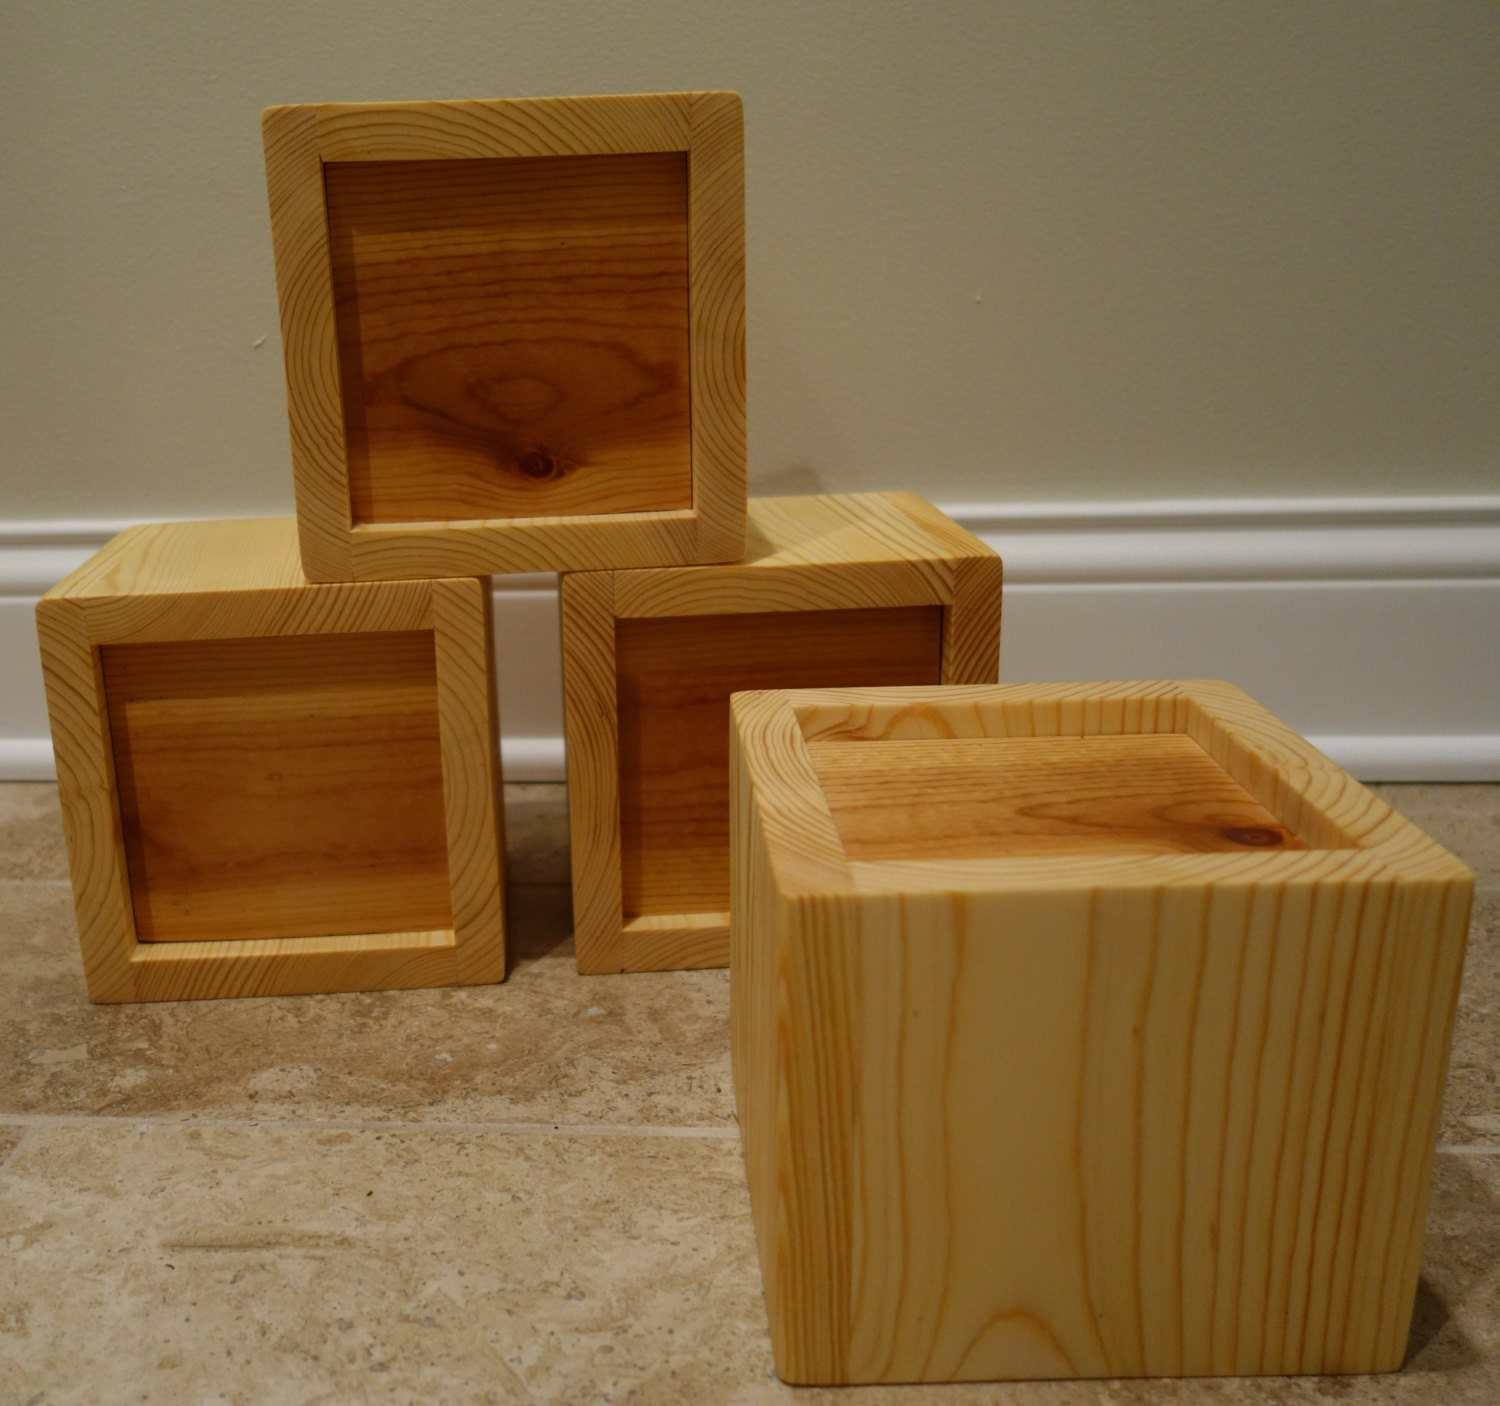 Custom Furniture Bed Risers 2 5 5 Handmade Solid